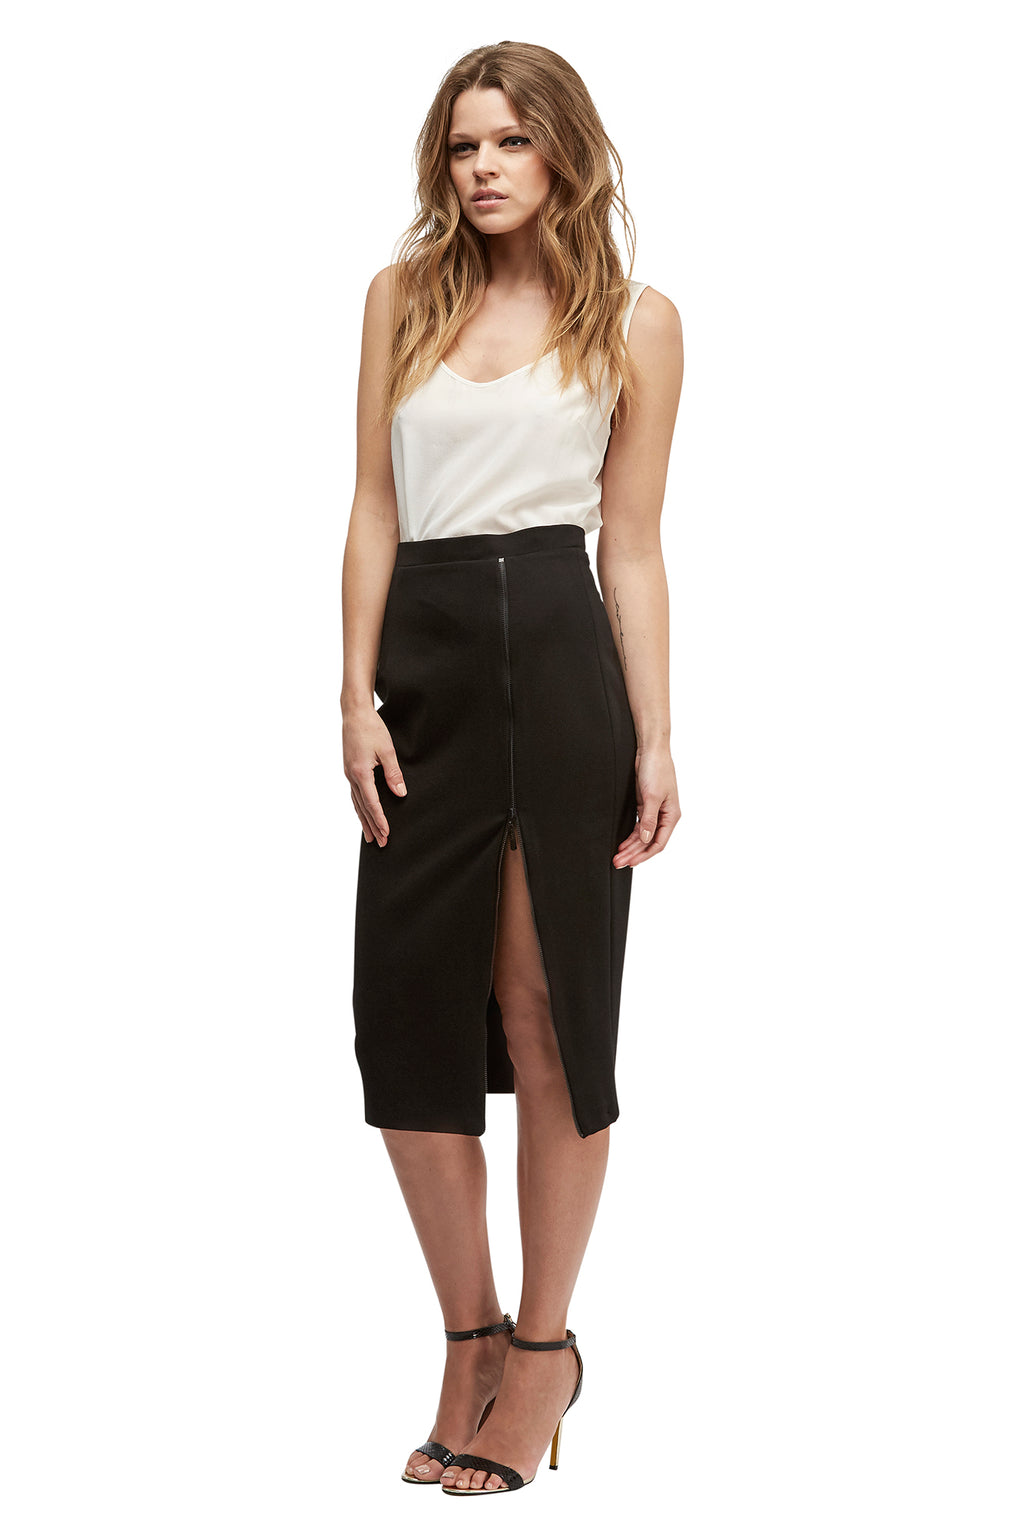 The Gigi Skirt